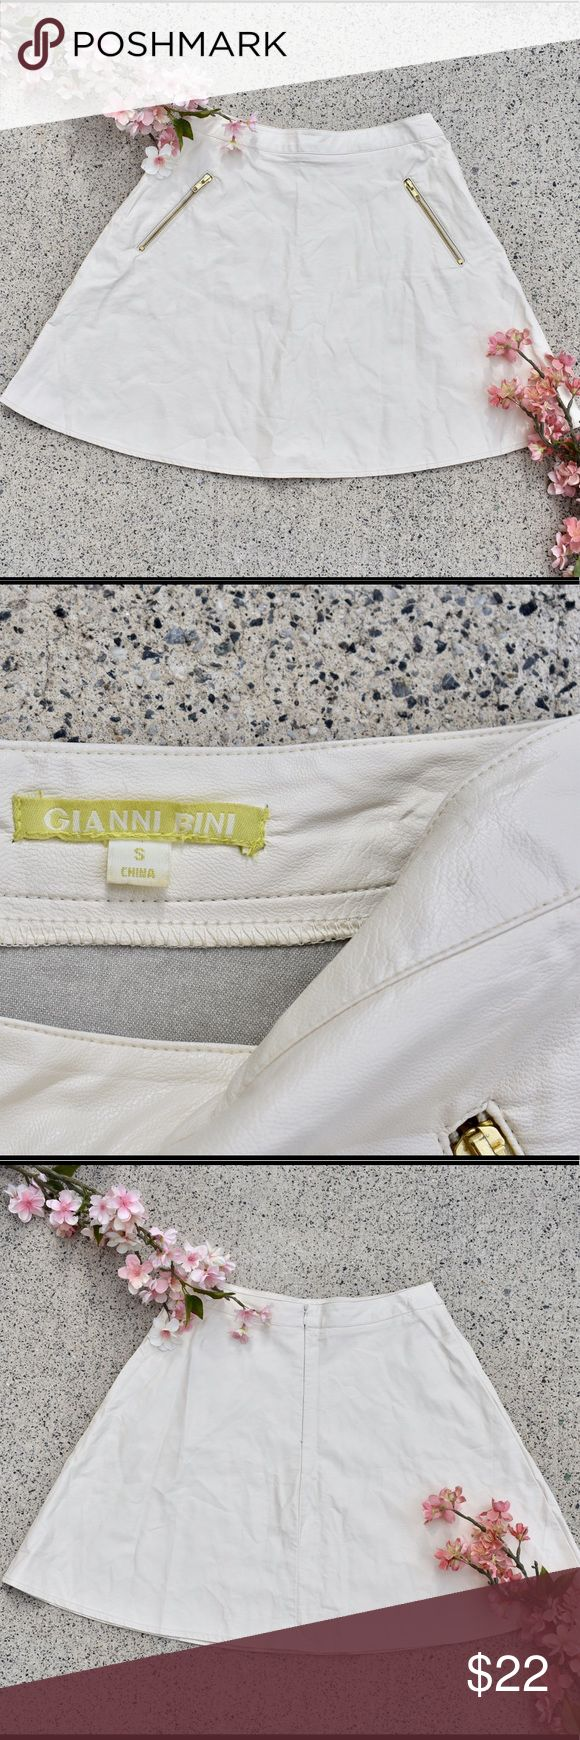 "🌸Faux White Leather Skater Skirt Pre-loved but flawless 💘 the cutest skirt in fabulous white faux leather that screams classy and edgy at the same time! so many ways this skirt could be worn, definitely a must have piece! zips up and has an extra clasp in the back. 17 3/4"" long and 28"" waist. Gianni Bini Skirts"